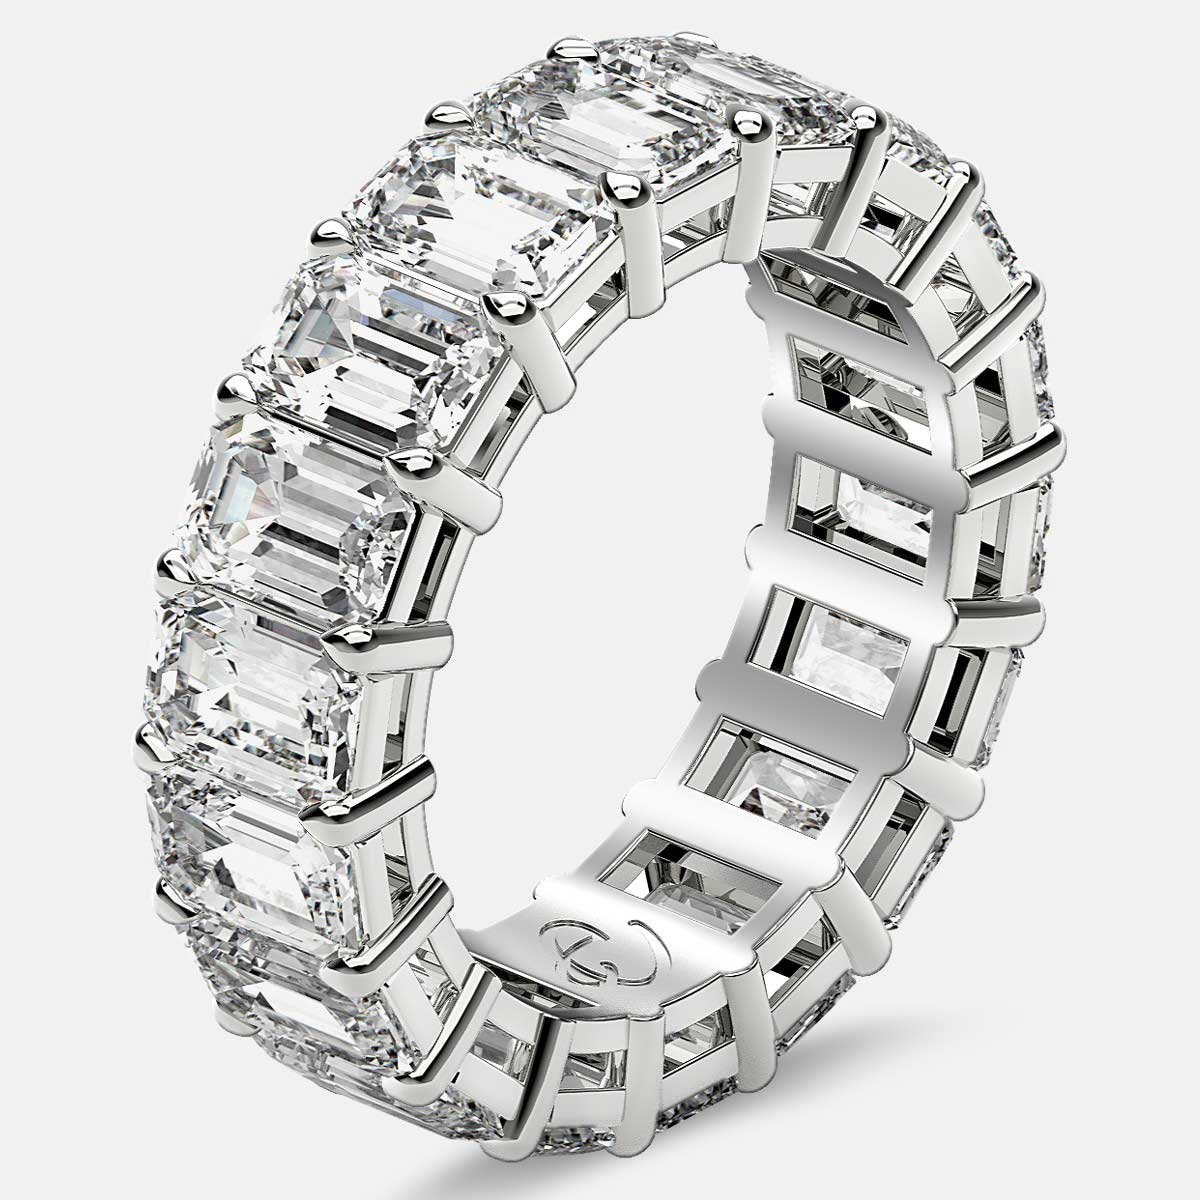 Eternity Ring with Prong Set Emerald Cut Diamonds in 18k White Gold